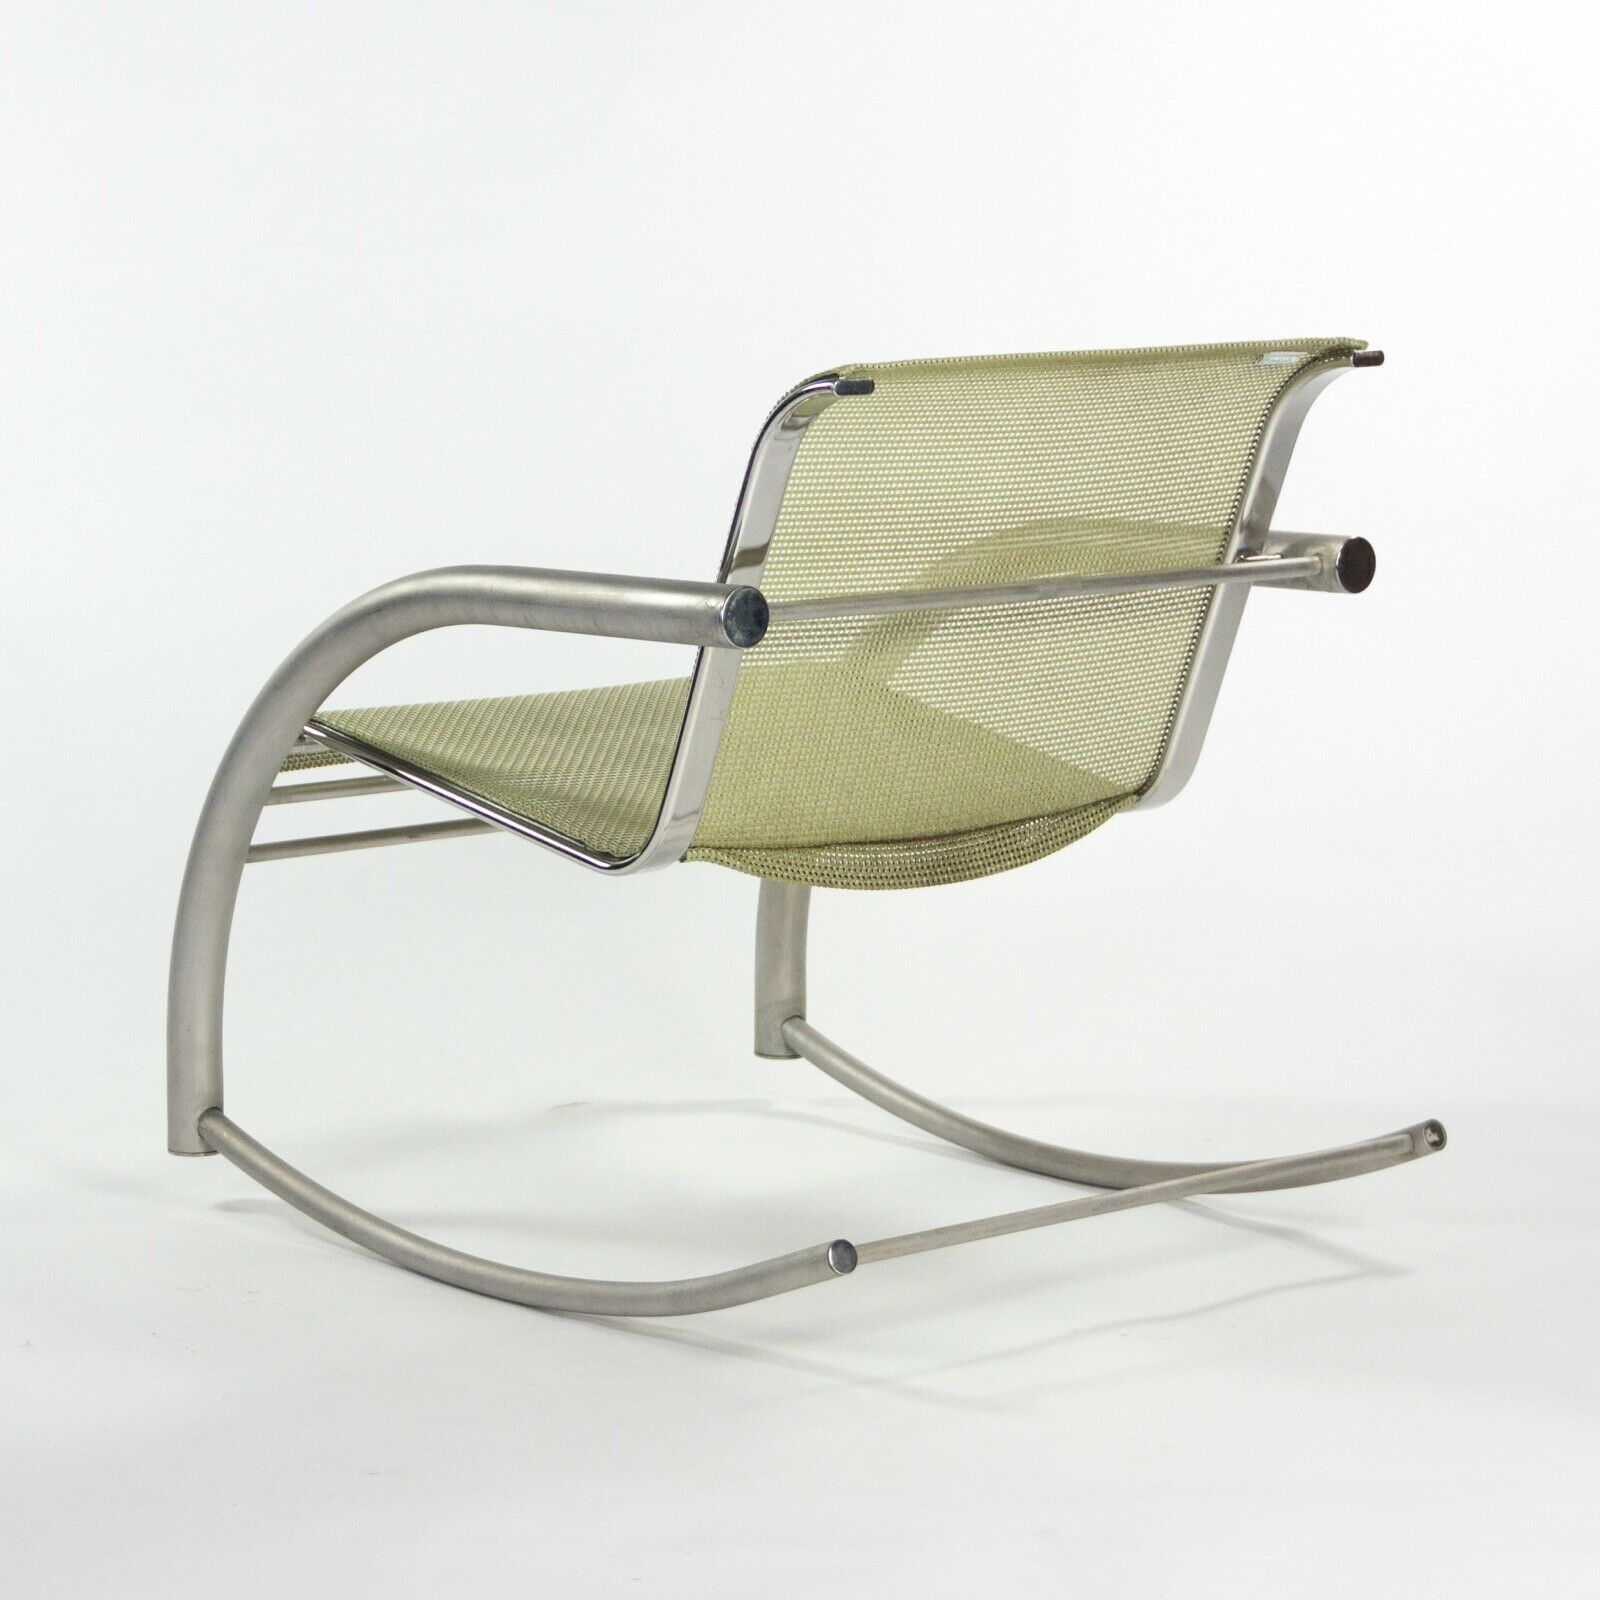 2001 Prototype Richard Schultz 2002 Collection Stainless Mesh Cantilever Rocker Chair